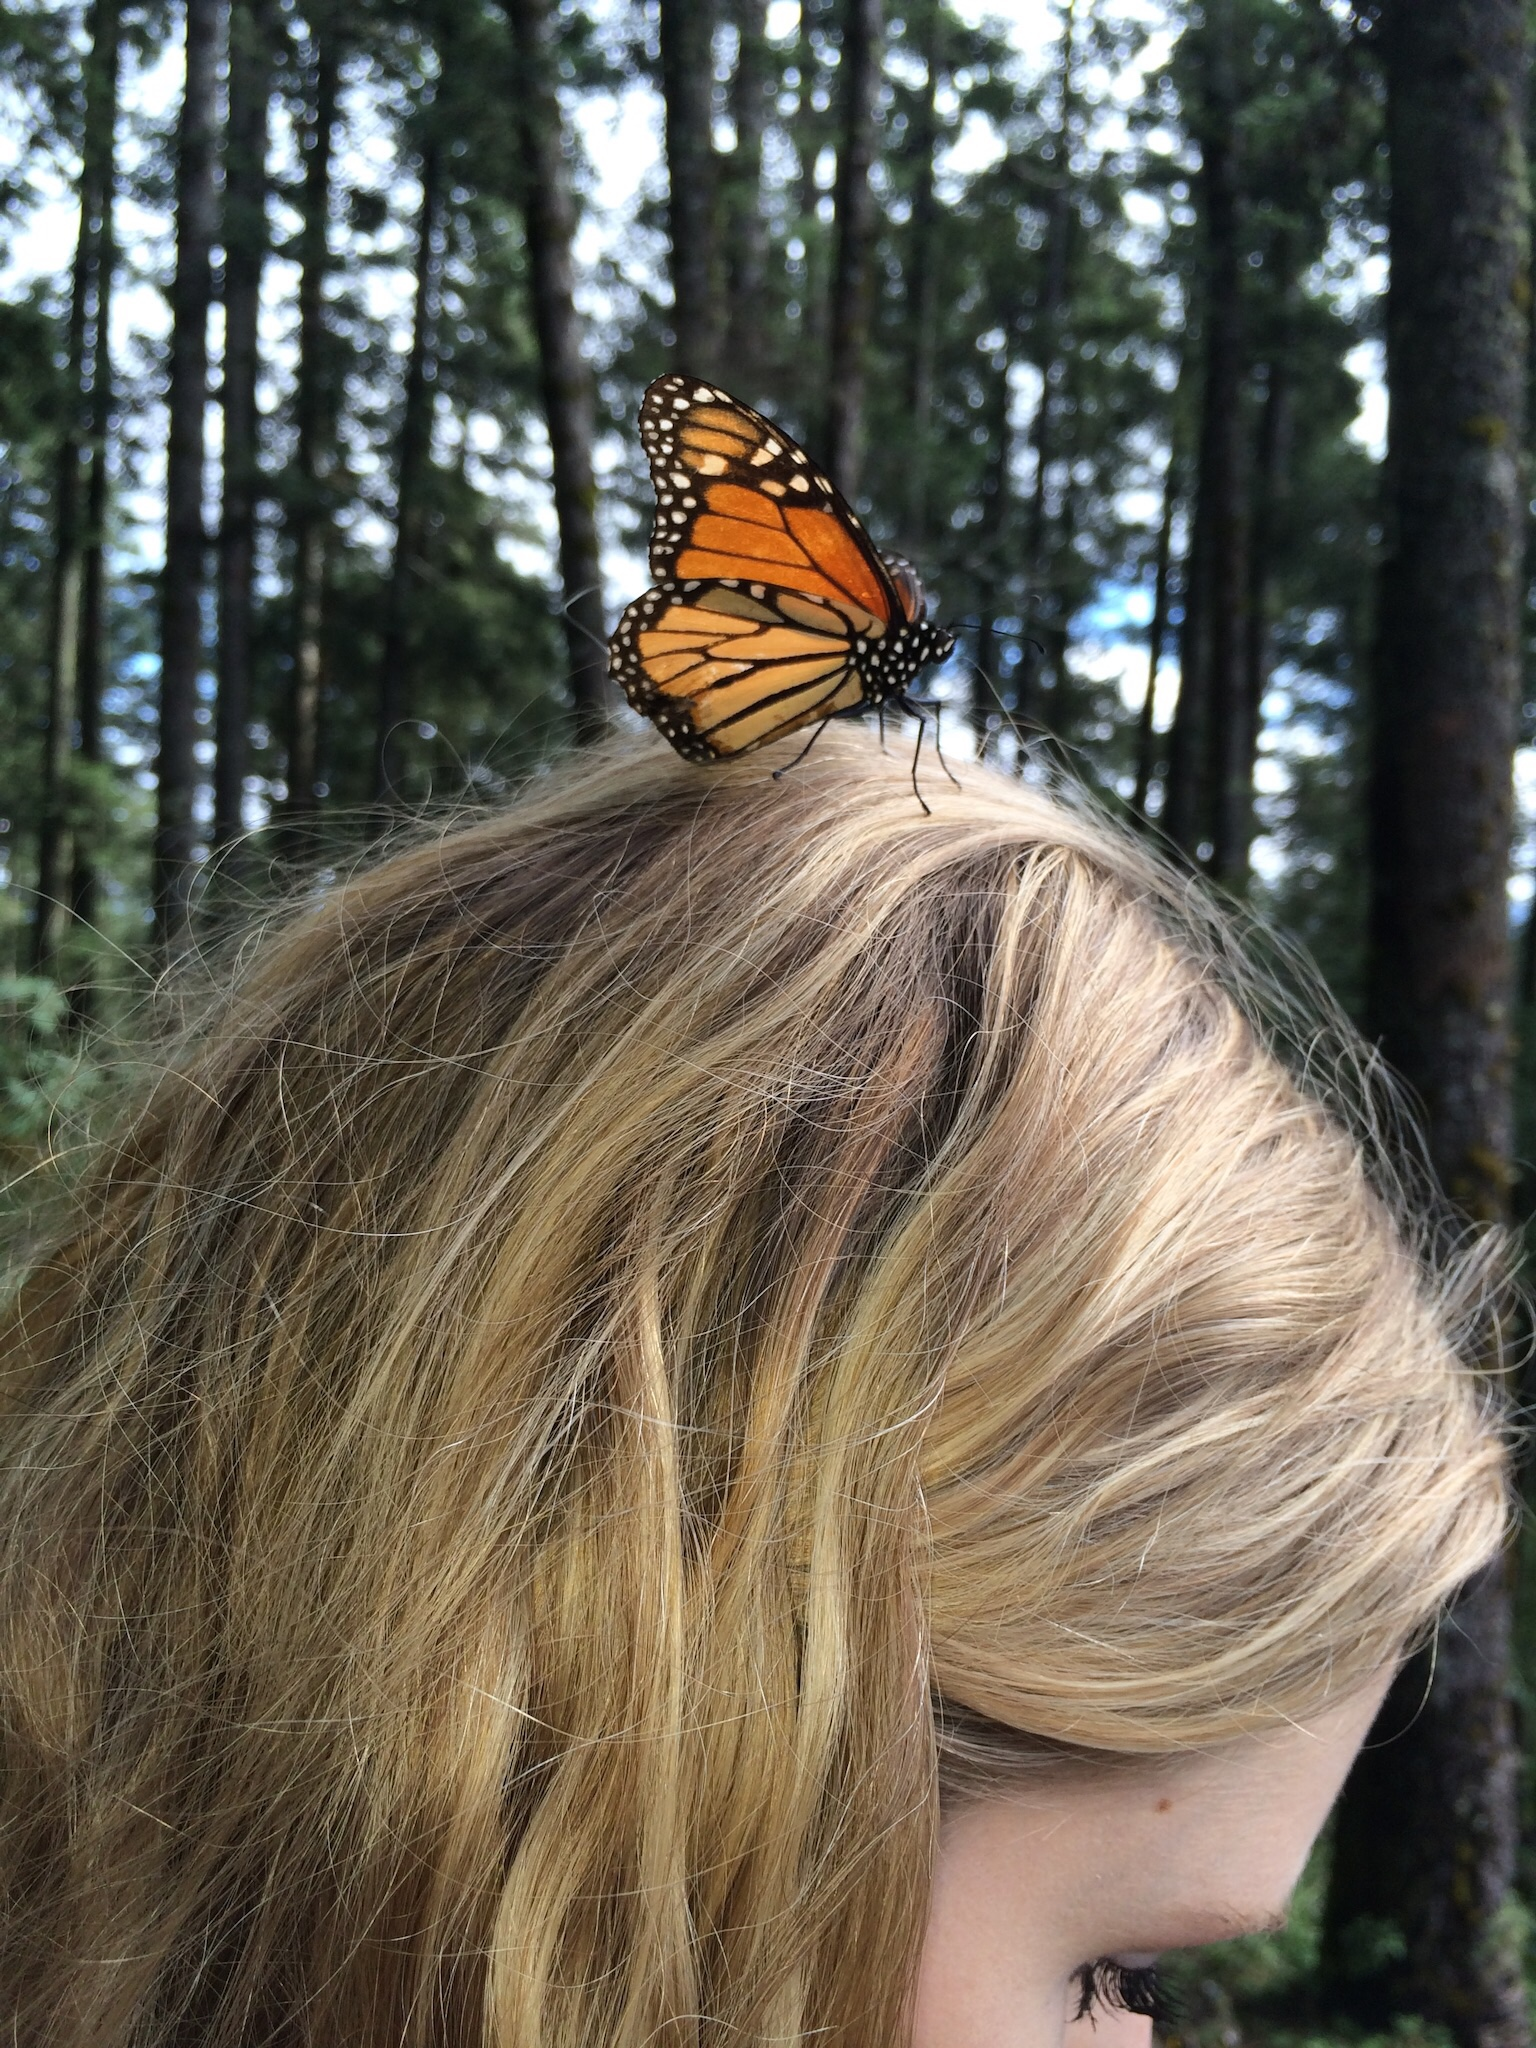 Sage provides fb a resting Place for a monarch